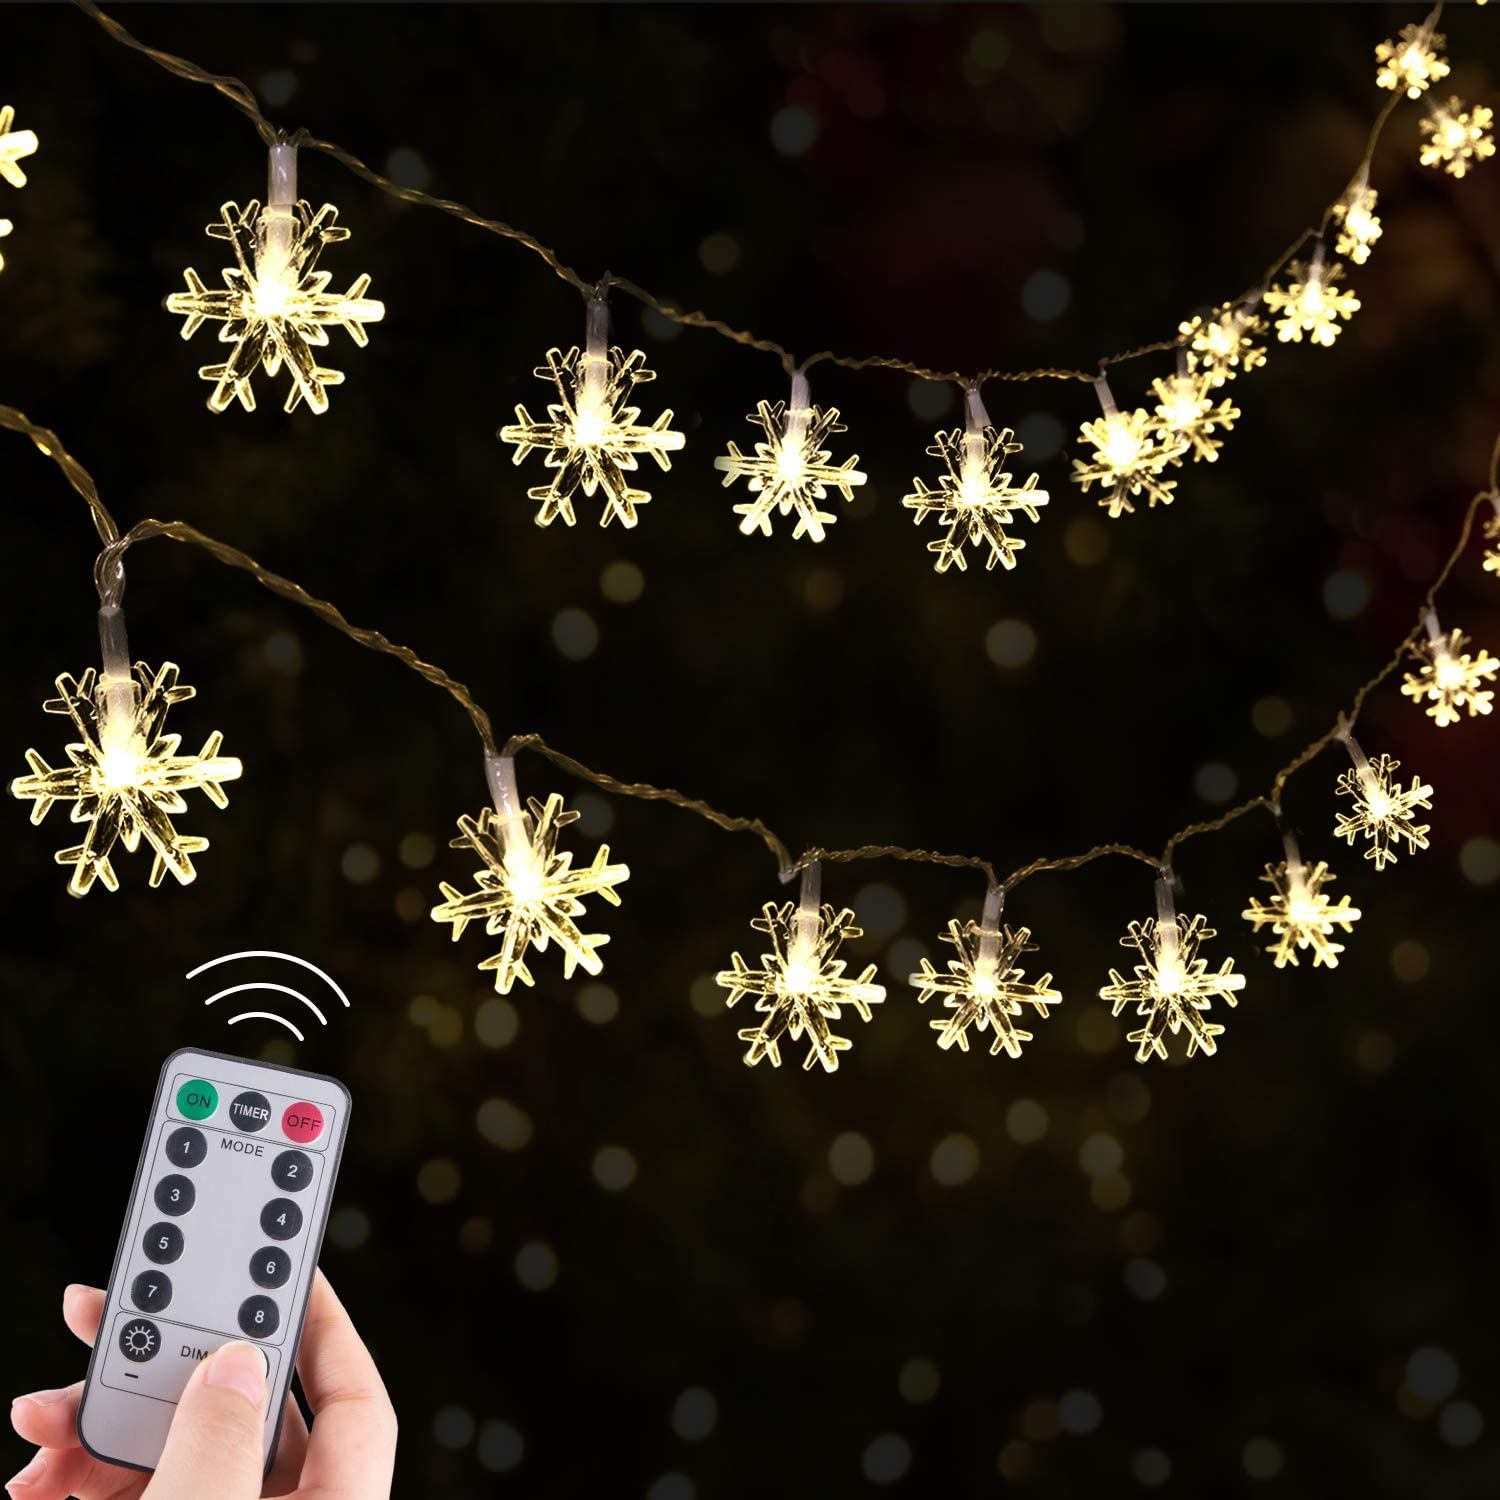 Christmas Snowflake String Lights, 13.8 Ft 40 LED Fairy Lights, Battery-Operated Waterproof with 8 Lighting Modes for Xmas Home Garden Bedroom and Indoor&Outdoor Decoration, Warm White